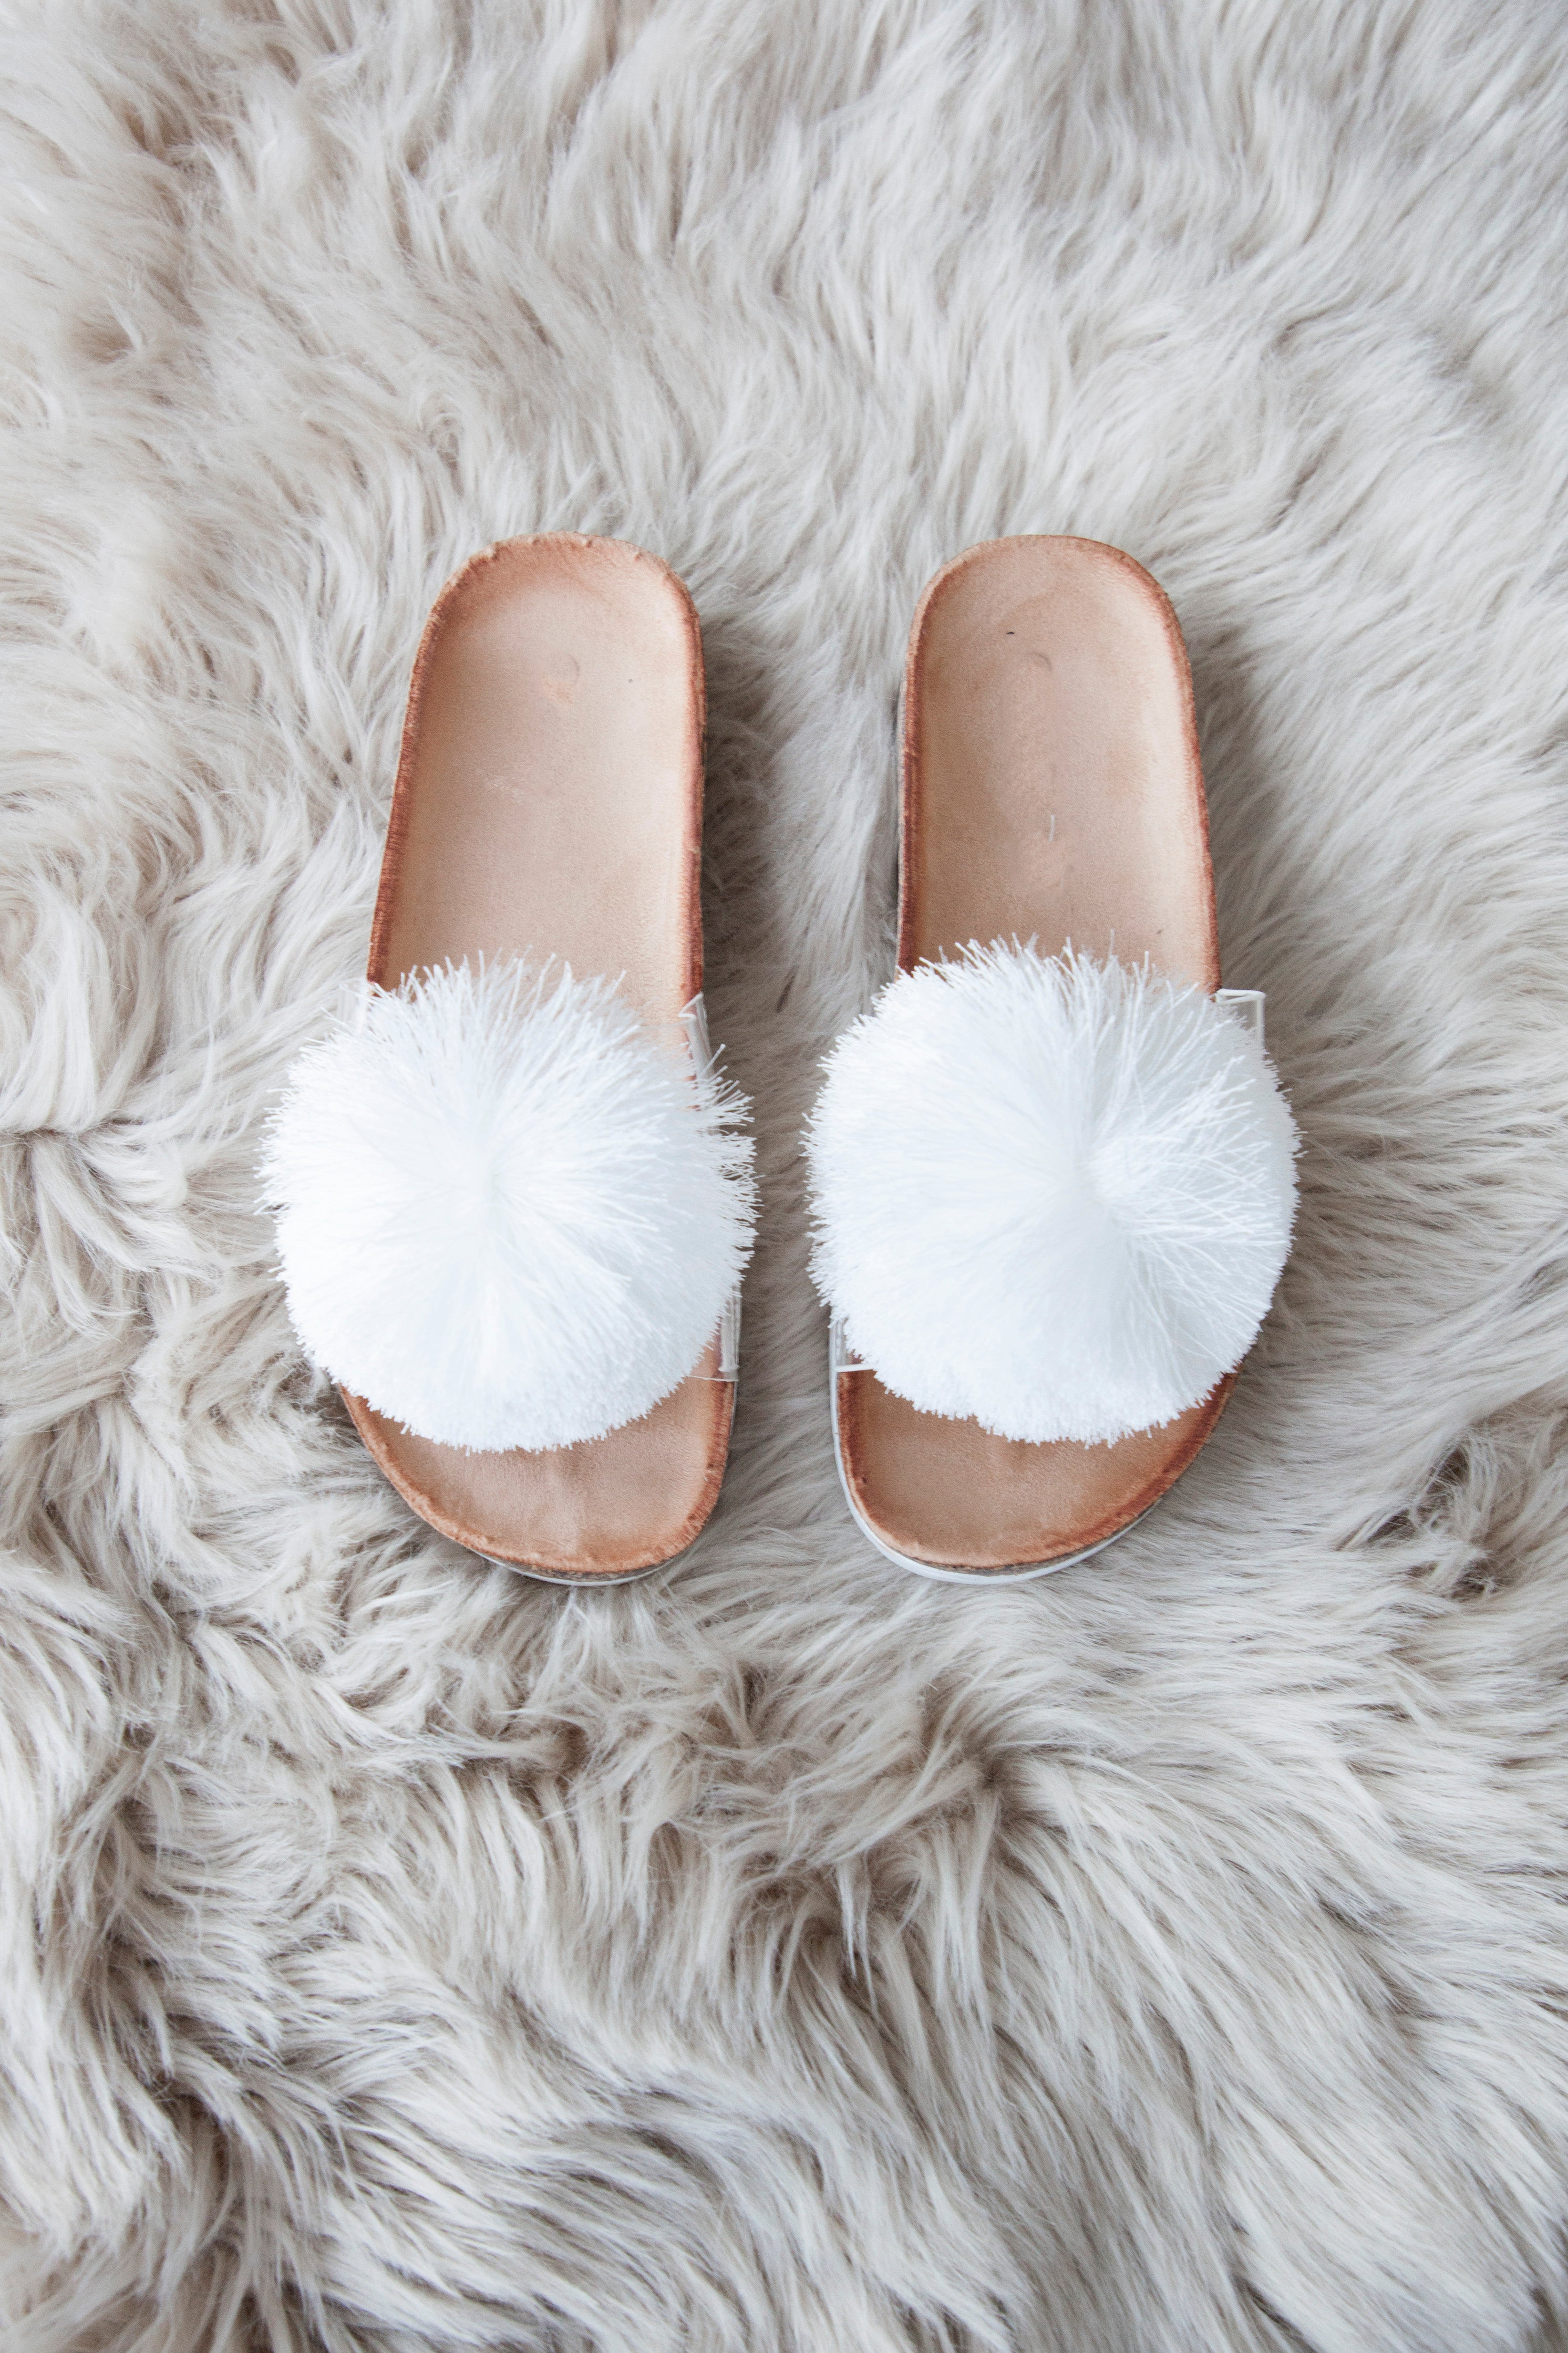 I'm A Cheerleader White - Slippers